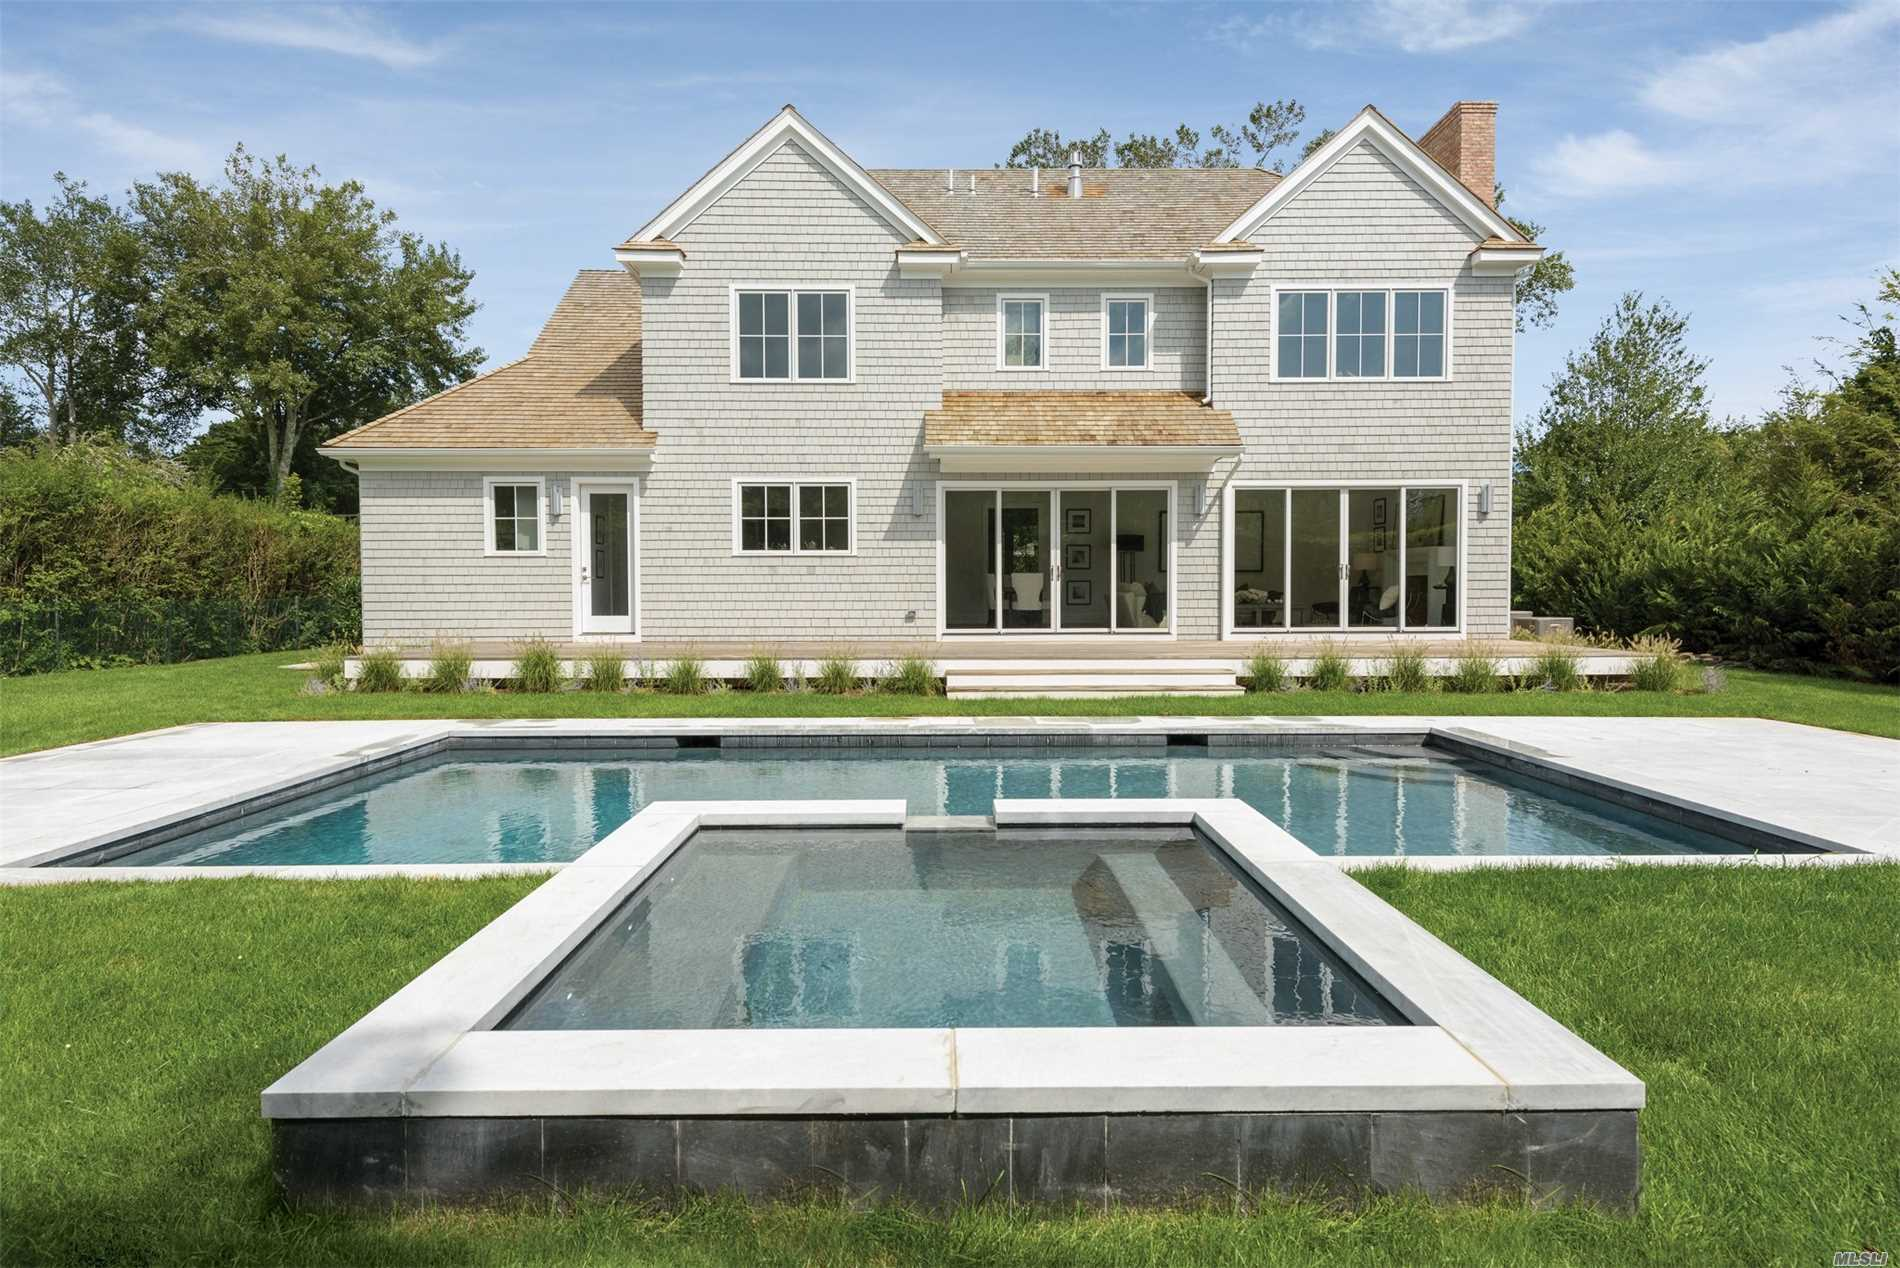 On Bucolic Red Creek Road In Hampton Bays, This Two-Story Postmodern Home On 3+/- Acres Has Five Bedrooms And Four Baths. It Borders Several Acres Of Protected Open Space, And Is Perfectly Planned For Entertaining Or Relaxing In Good Company, Indoors Or Out. The Driveway Opens Into A Parking Court With A Formal Fountain. The Columned Entrance Reveals A Light-Filled Open Living Space Brilliantly Illuminated By Huge Glass Doors, Large Windows And A Skylight. Enjoy The Heated Saltwater Pool Or Spa.